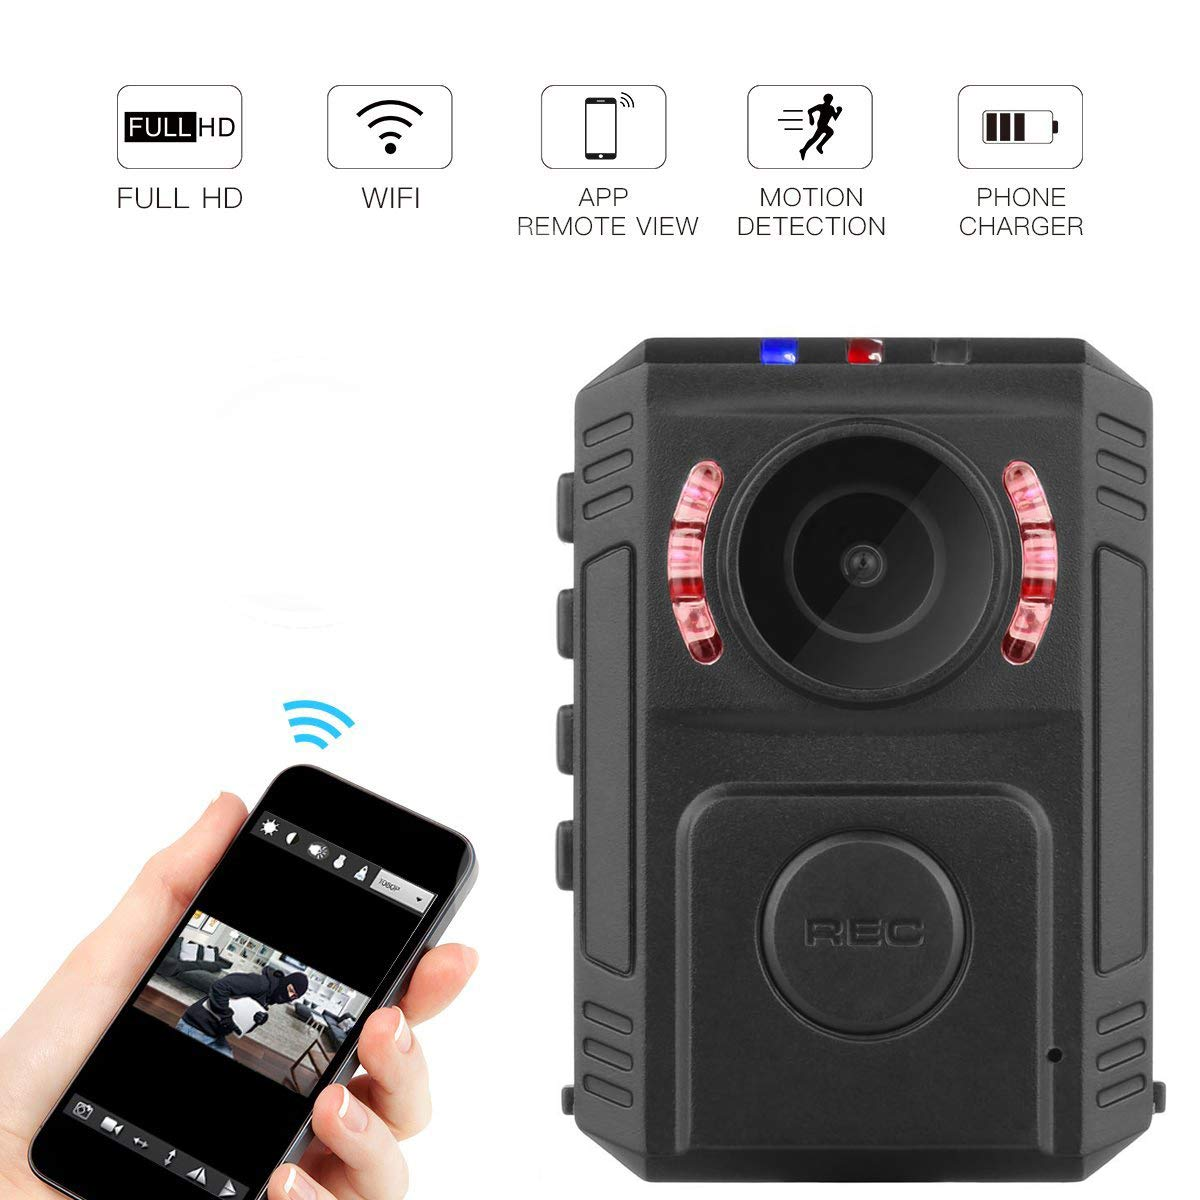 Amazon.com : Shadow P10 Mini Camera-Hidden Camera-Mirrorless Camera Lenses-Camaras Espias-Mobile APP Application WiFi Point to View in Real Time-Law ...